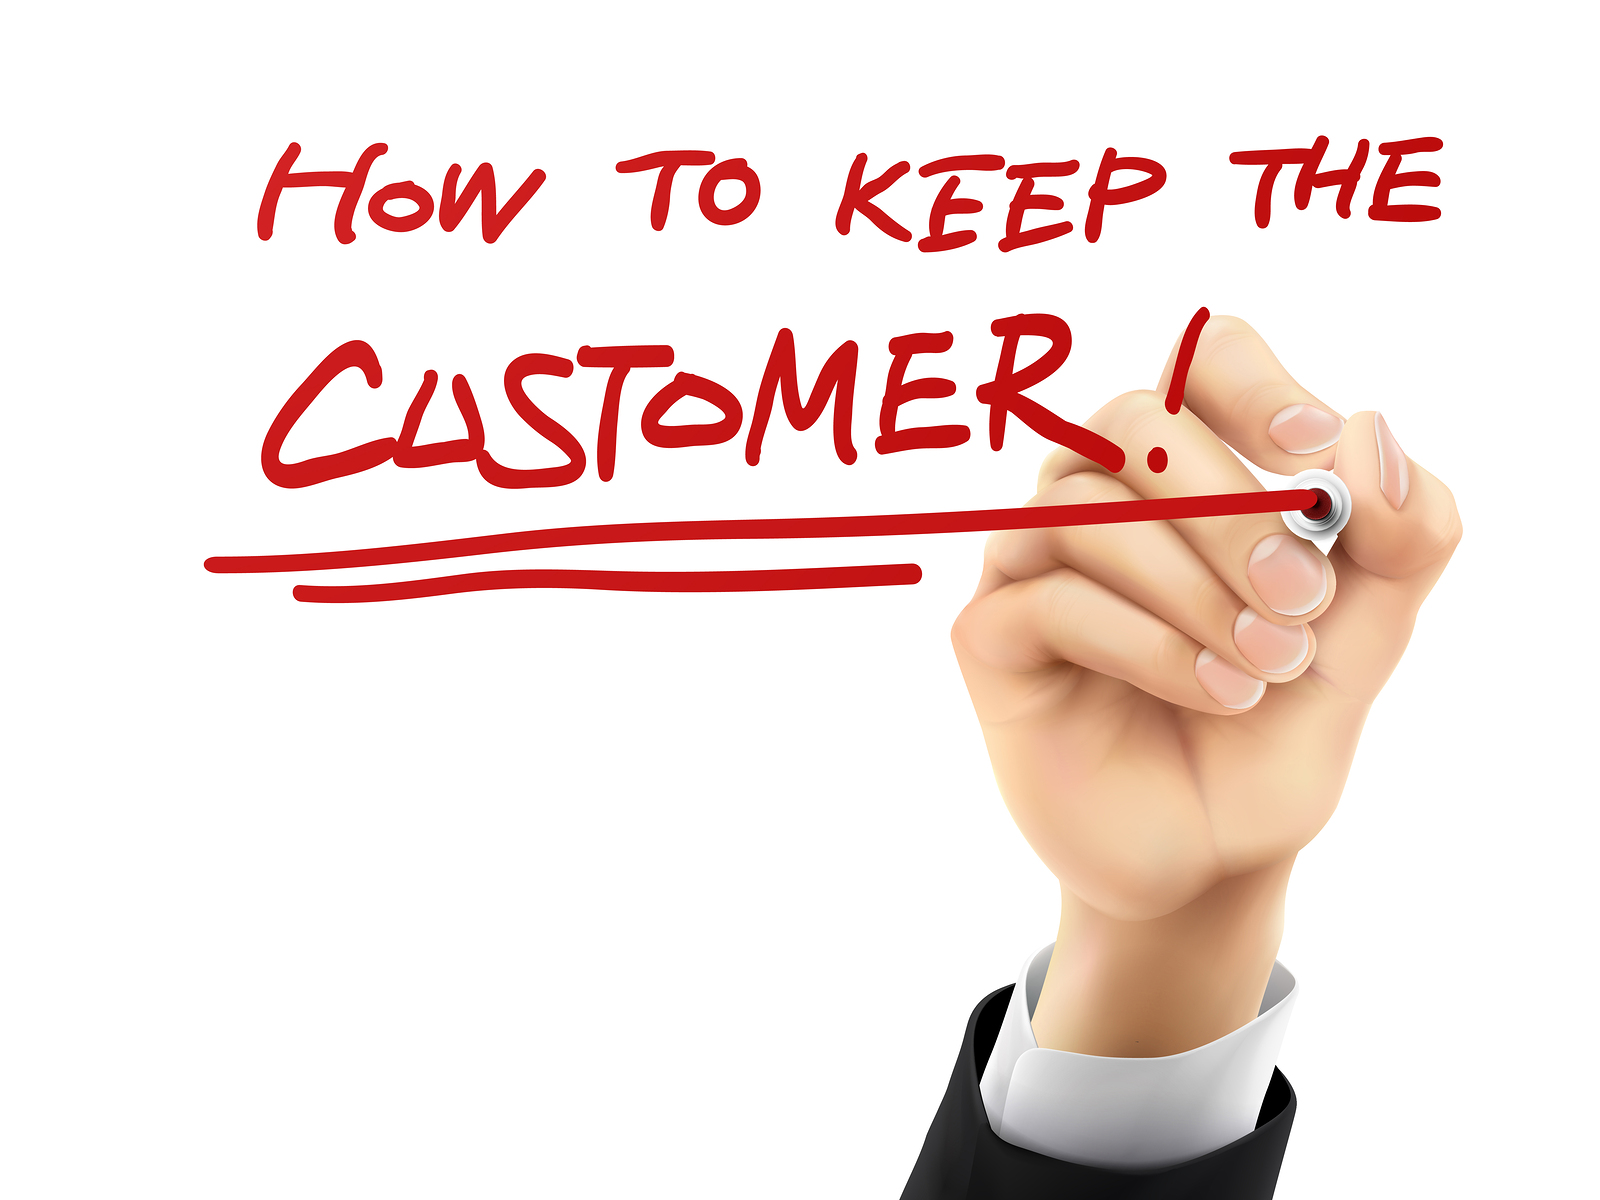 5 Gestures for Creating a Lasting Impression on Customers